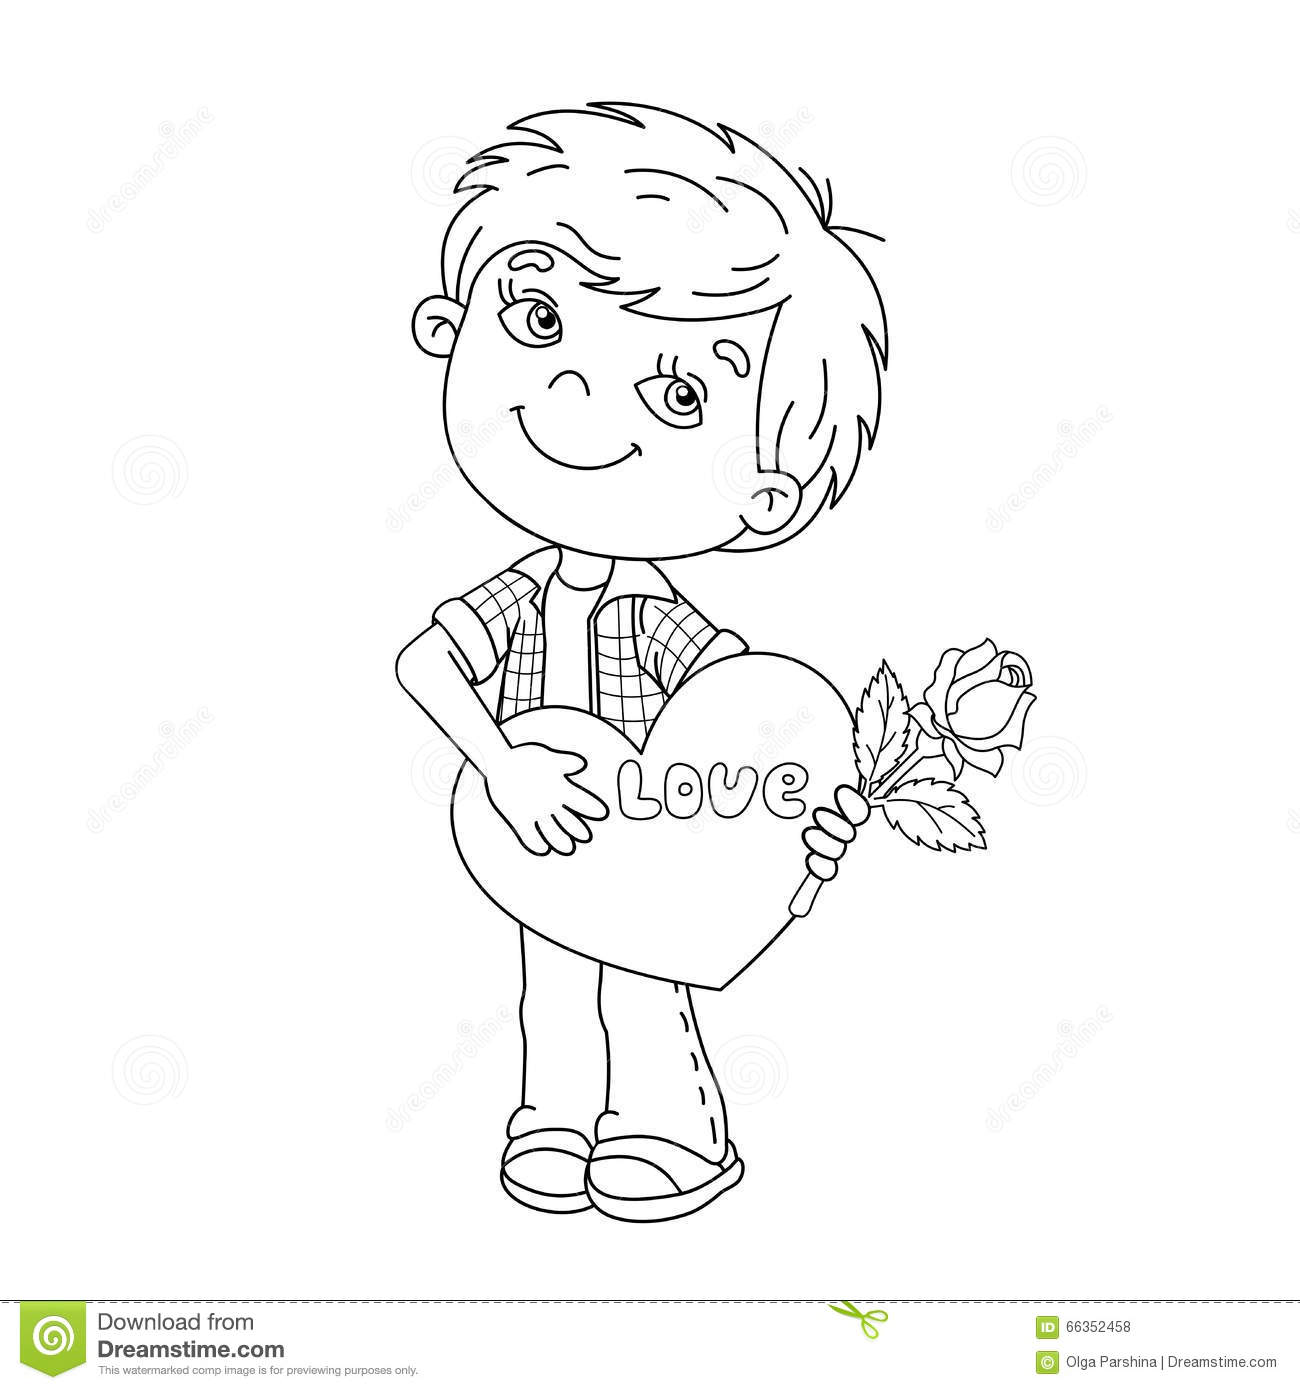 coloring page outline of boy with rose in hand with heart